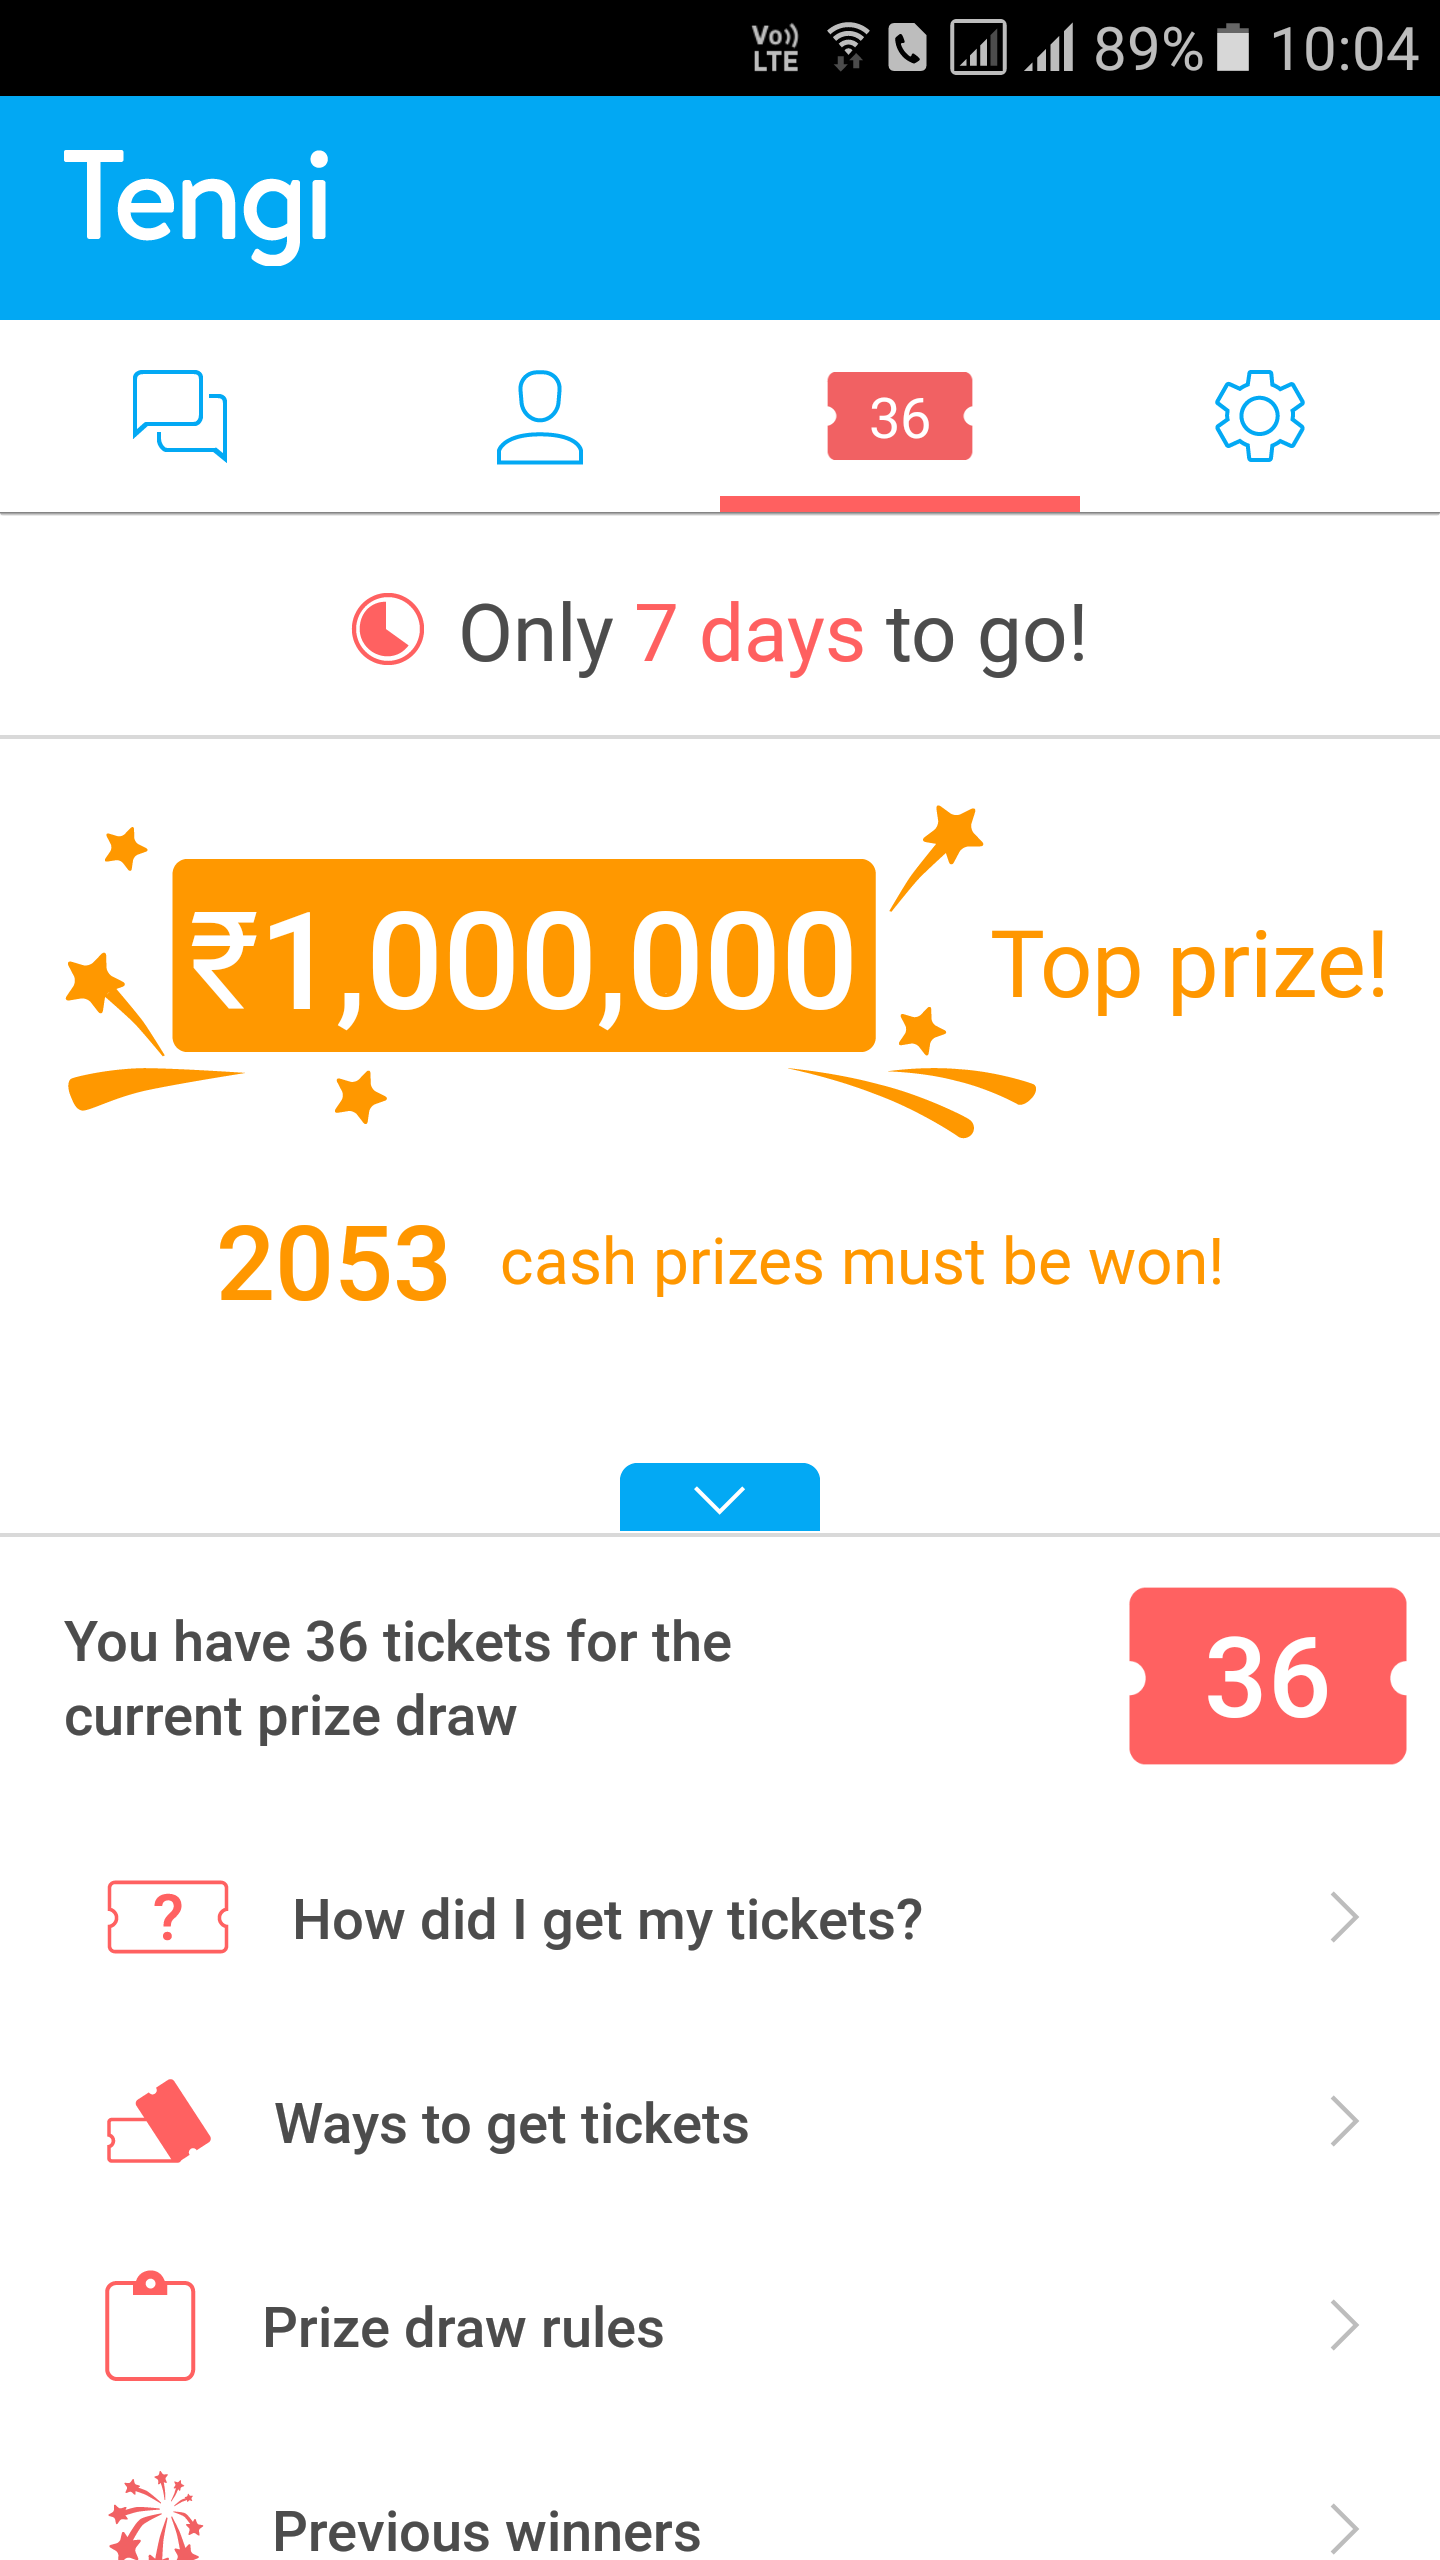 tengi im app review the top prize is rs 10 00 000 and there is a new draw every week along several other cash prizes apart from the top one